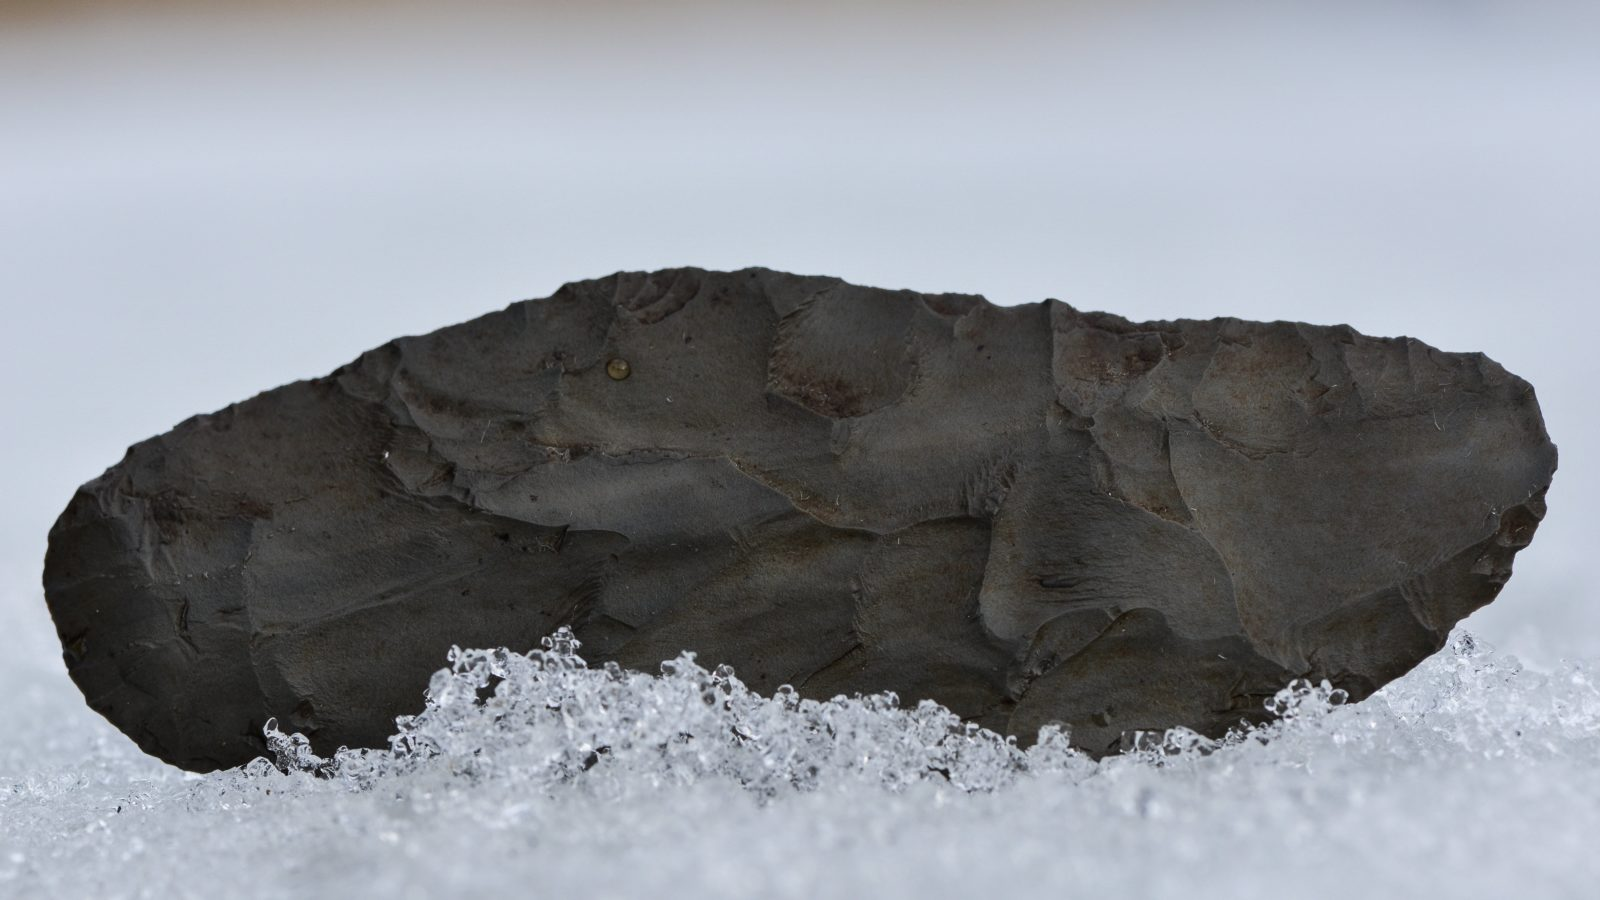 Stone Blade in Snow